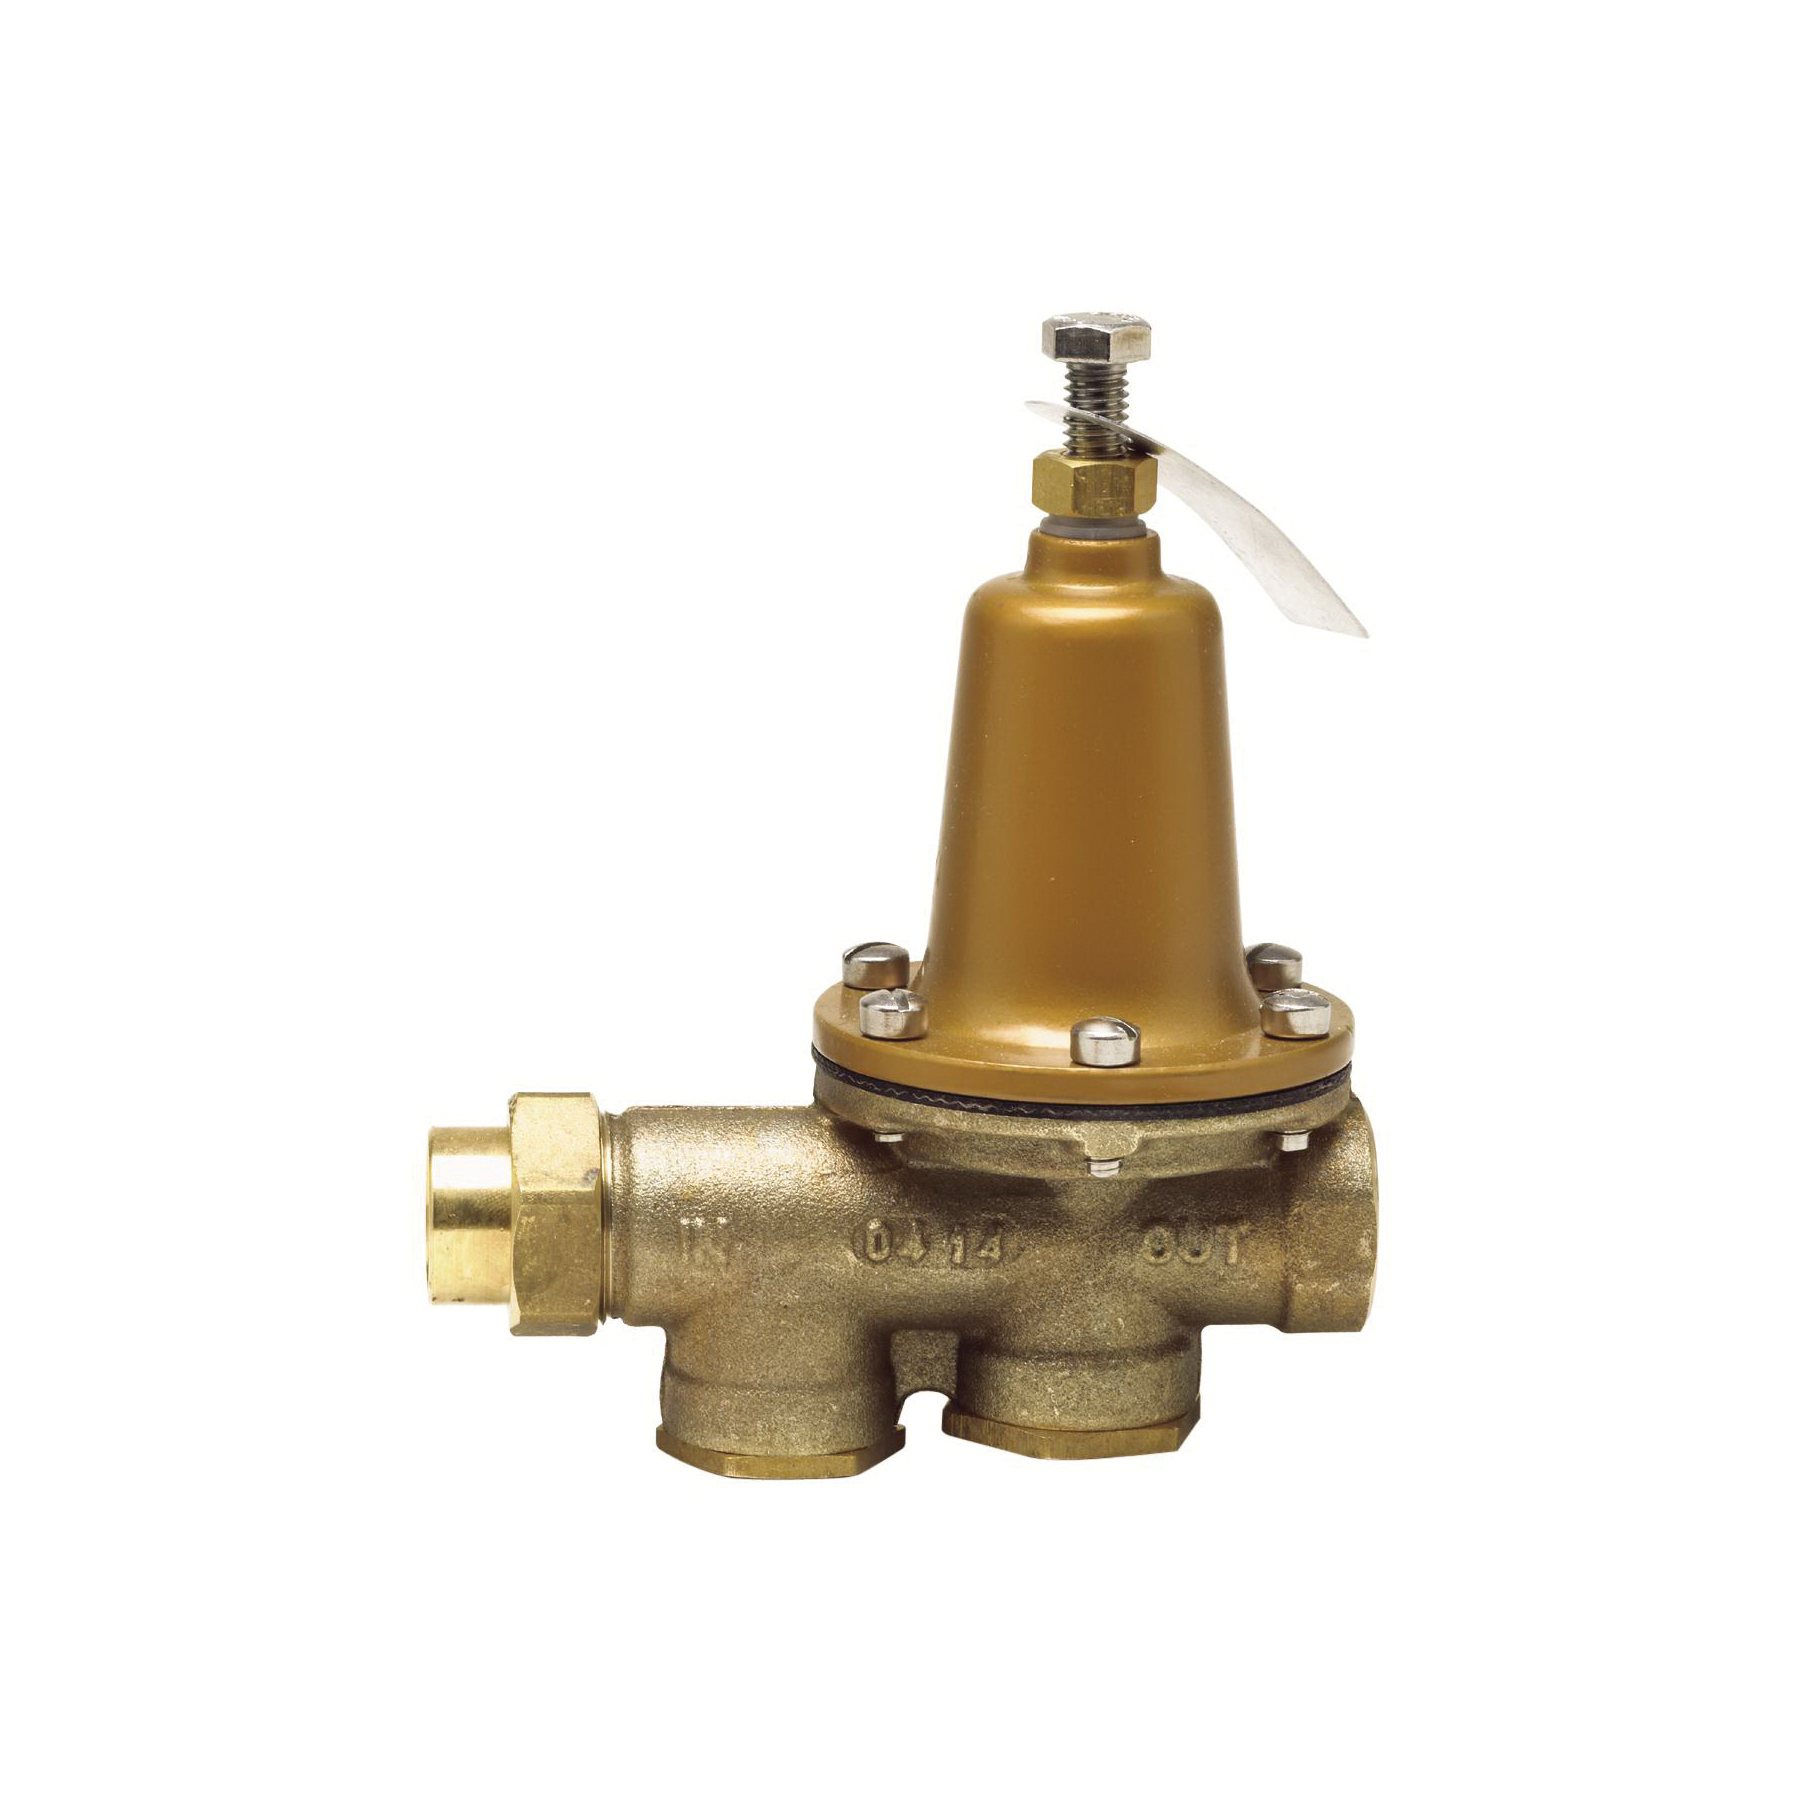 WATTS® 0009279 LF25AUB-Z3 Standard Pressure Reducing Valve, 3/4 in, FNPT, 75 to 125 psi, Copper Silicon Alloy Body